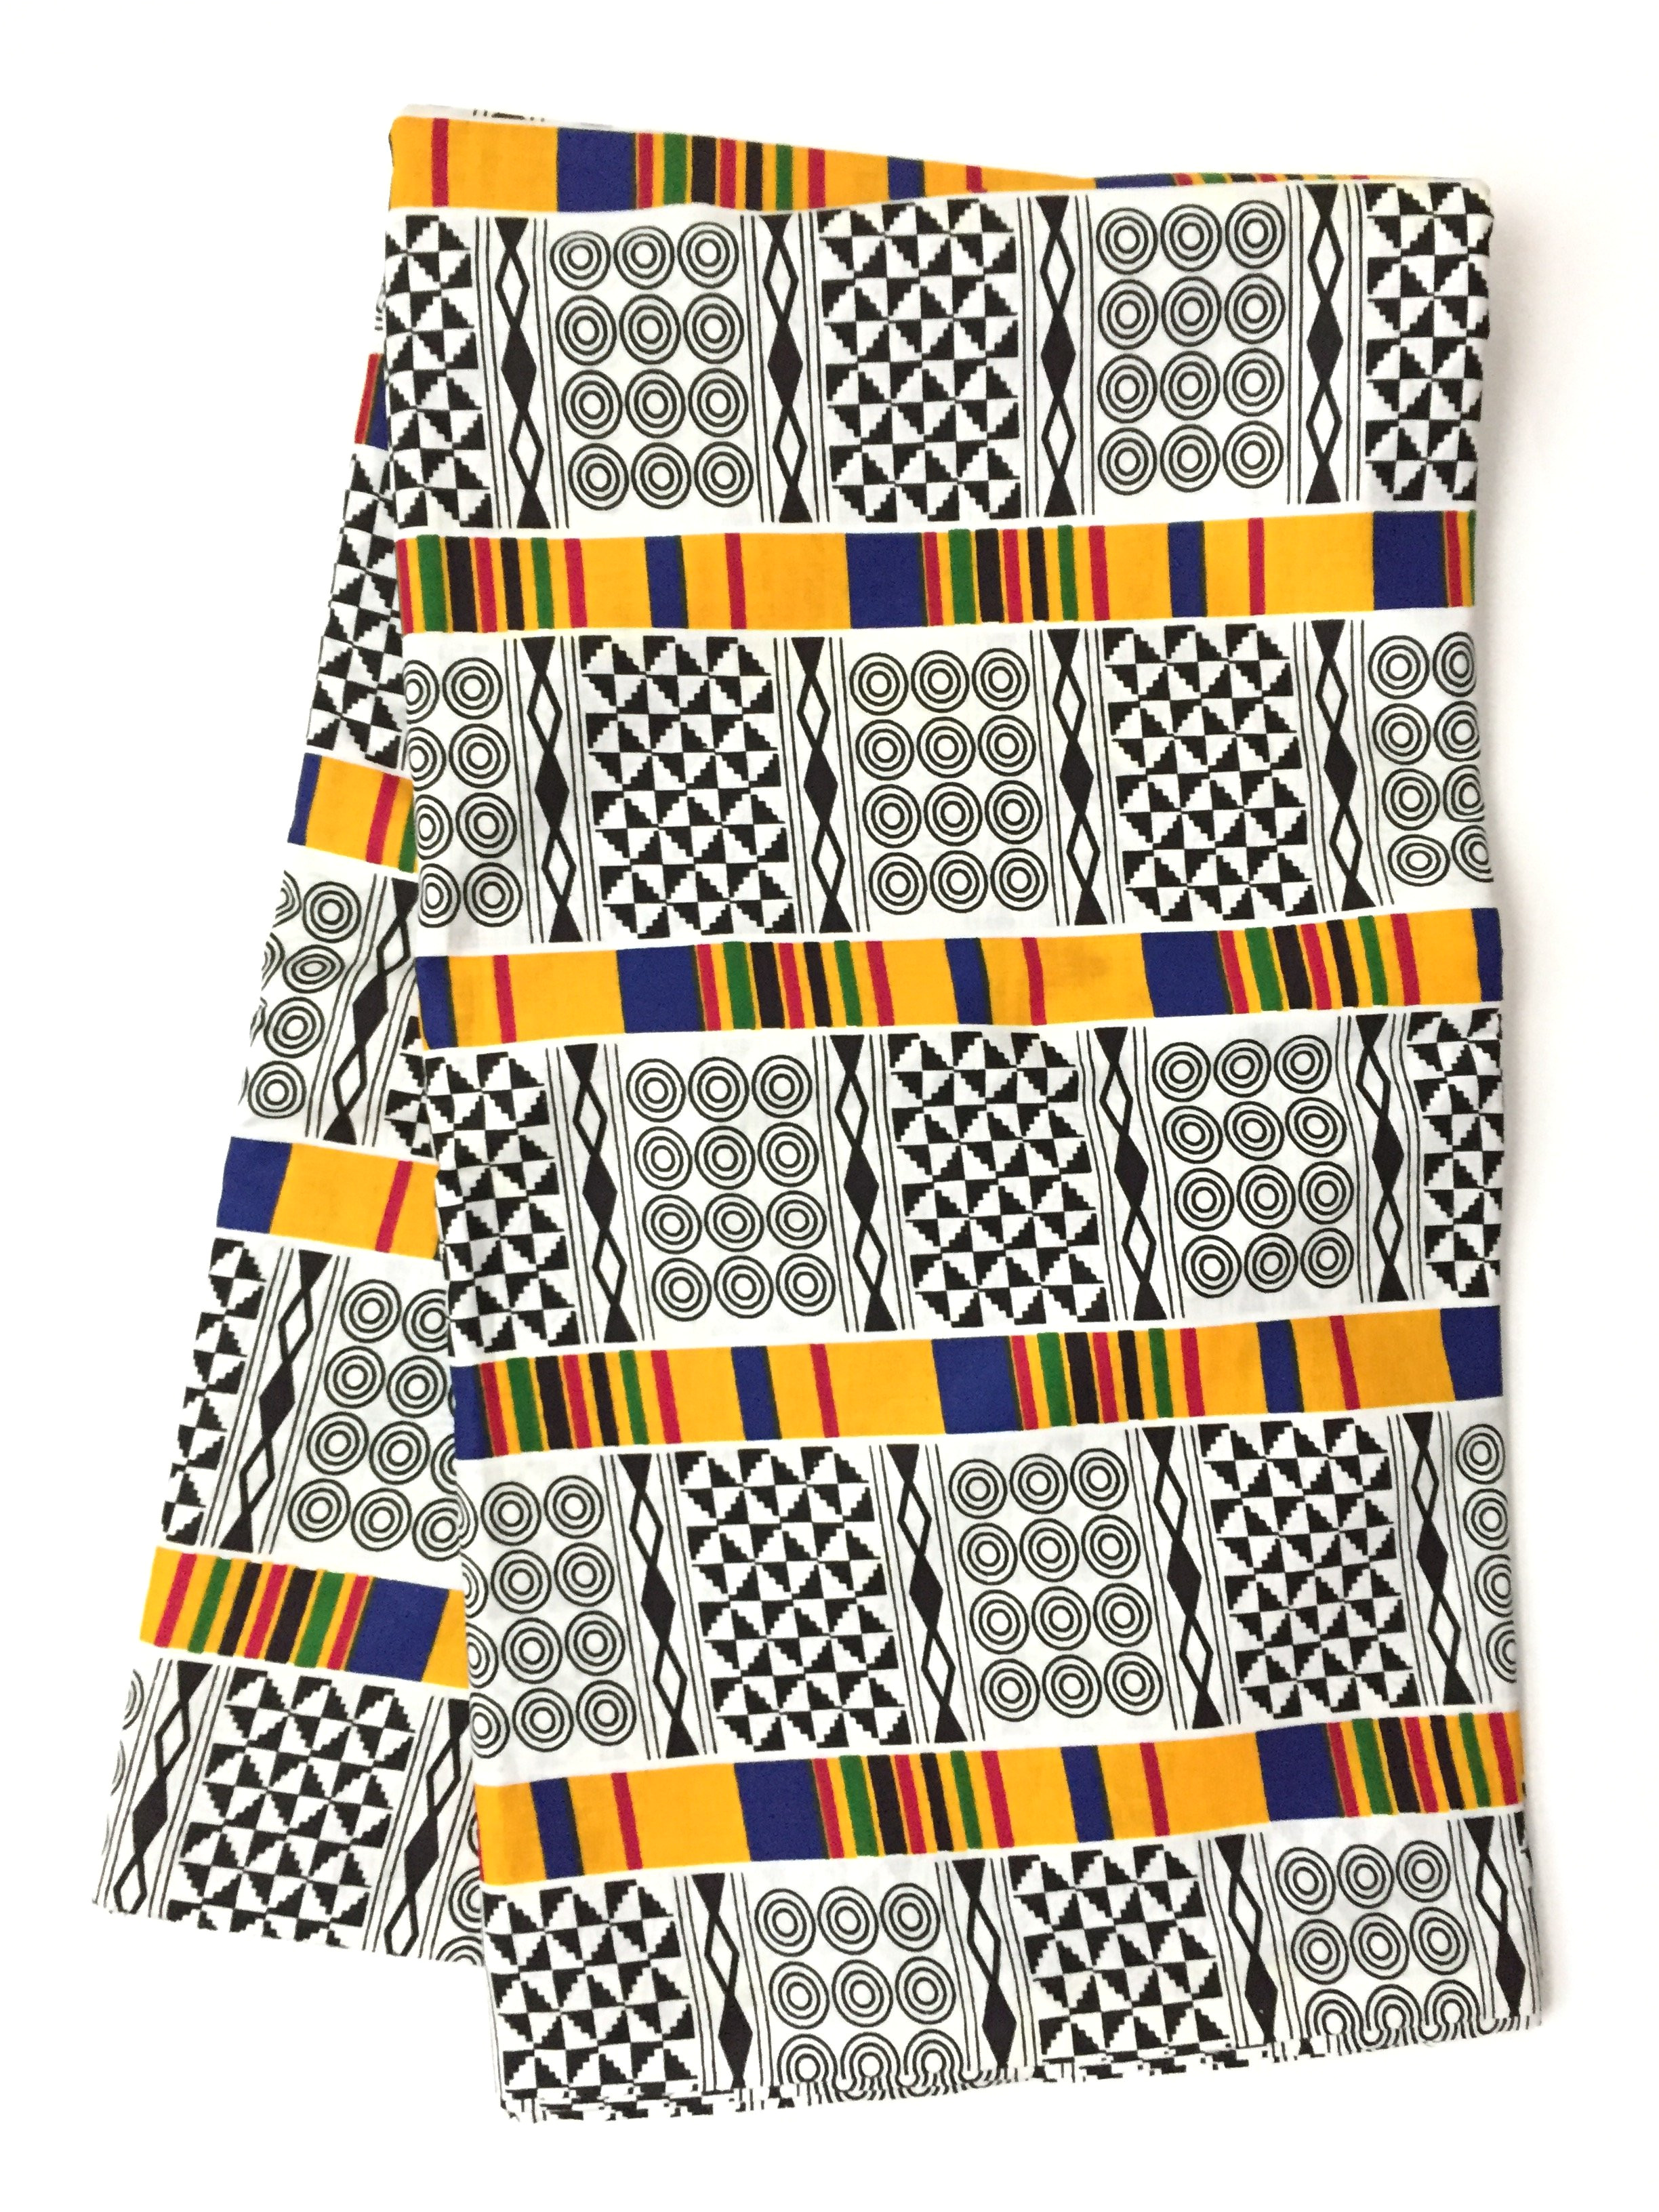 mudcloth fabric by the yard kente fabric products